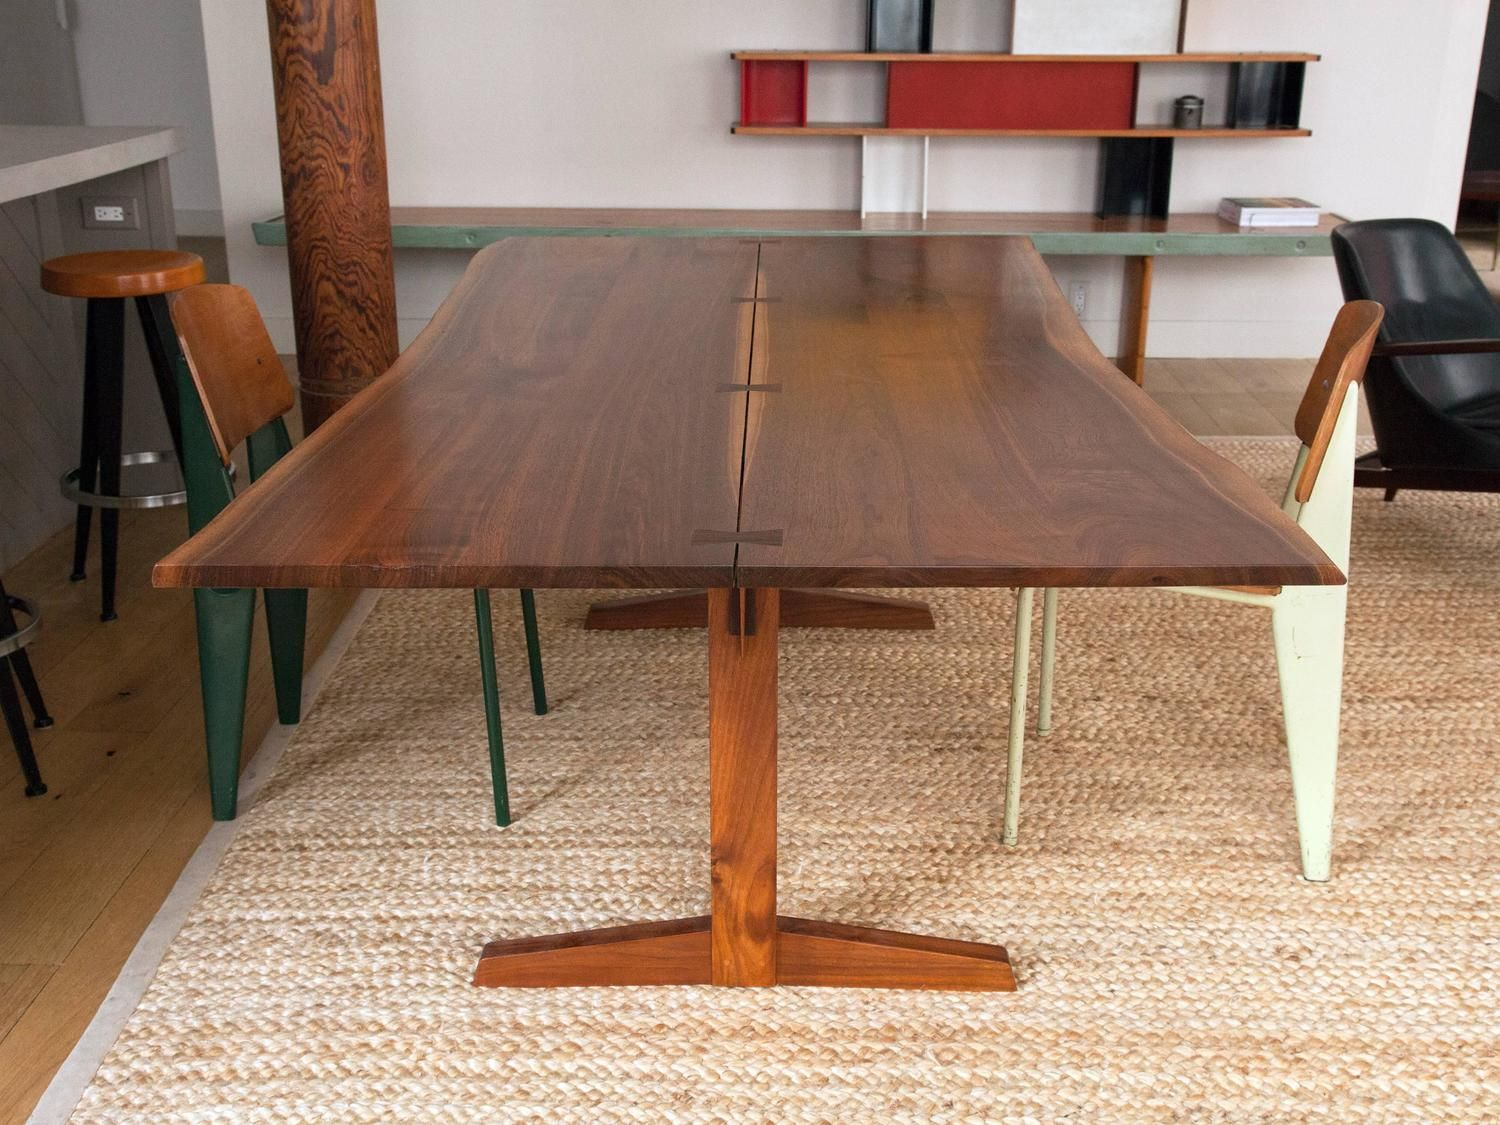 Japanese Dining Table For Sale George Nakashima Trestle Dining Table With Rosewood